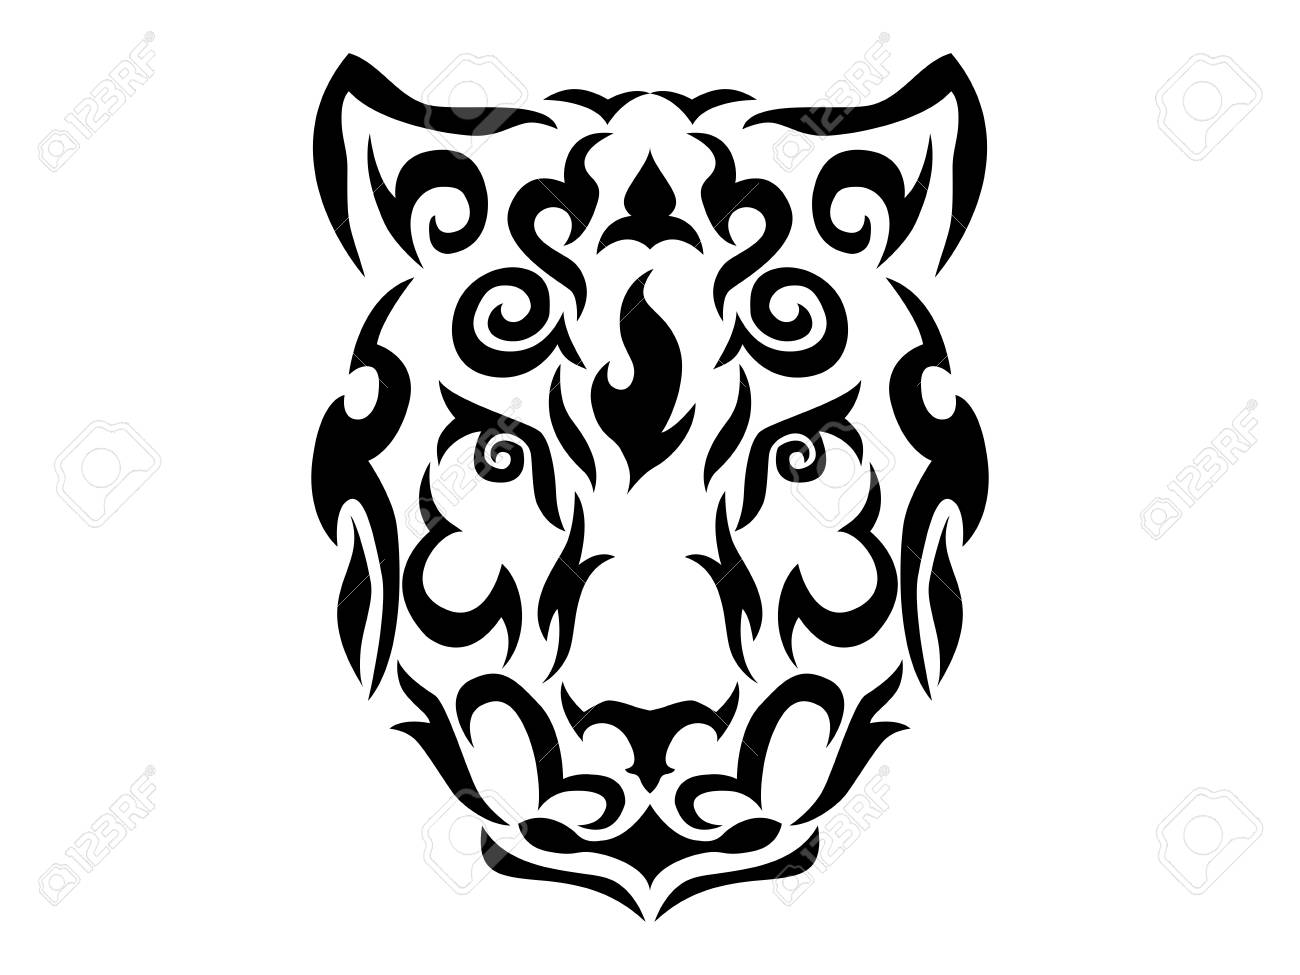 771757622 Tribal Snow Leopard Illustration Royalty Free Cliparts, Vectors, And ...